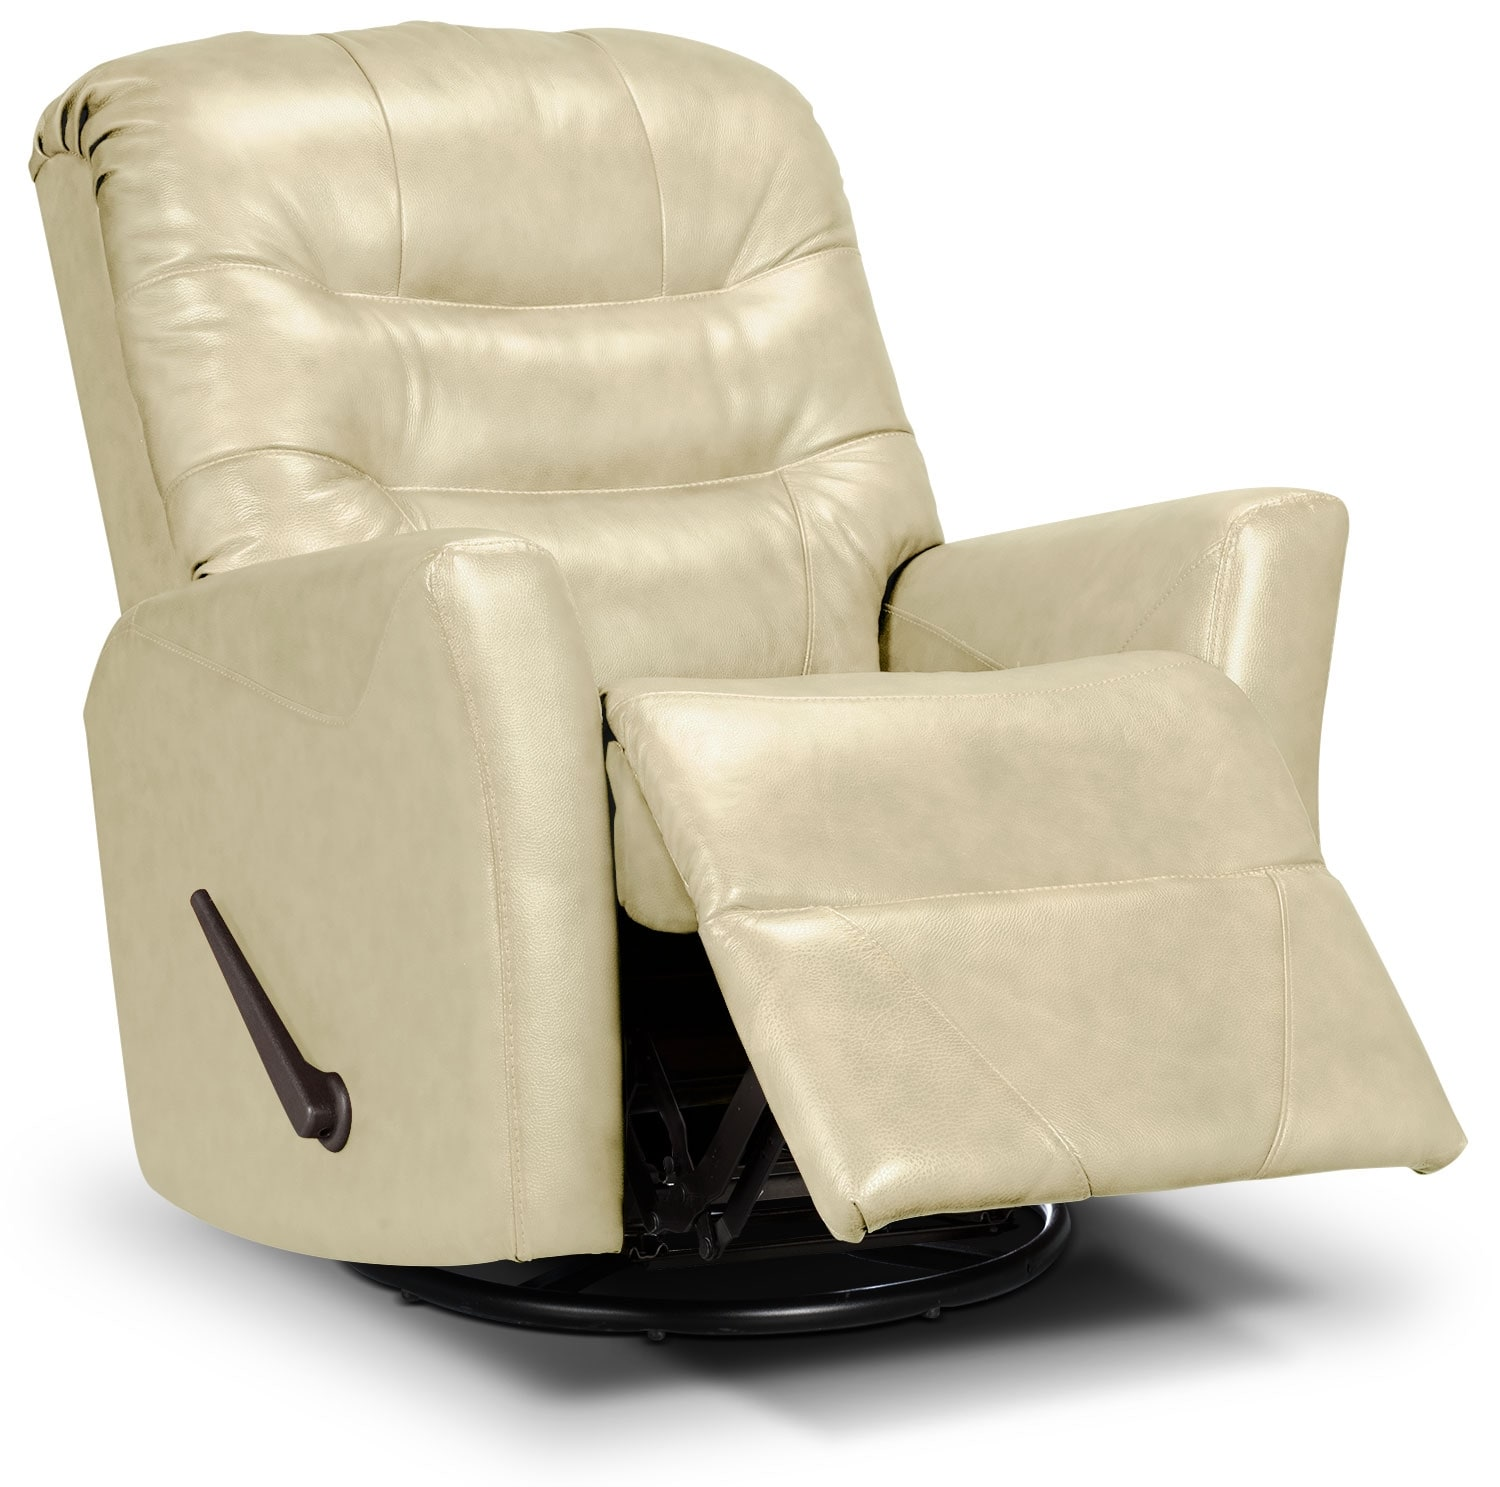 Living Room Furniture - Designed2B Recliner 4560 Bonded Leather Swivel Glider Recliner - Beige